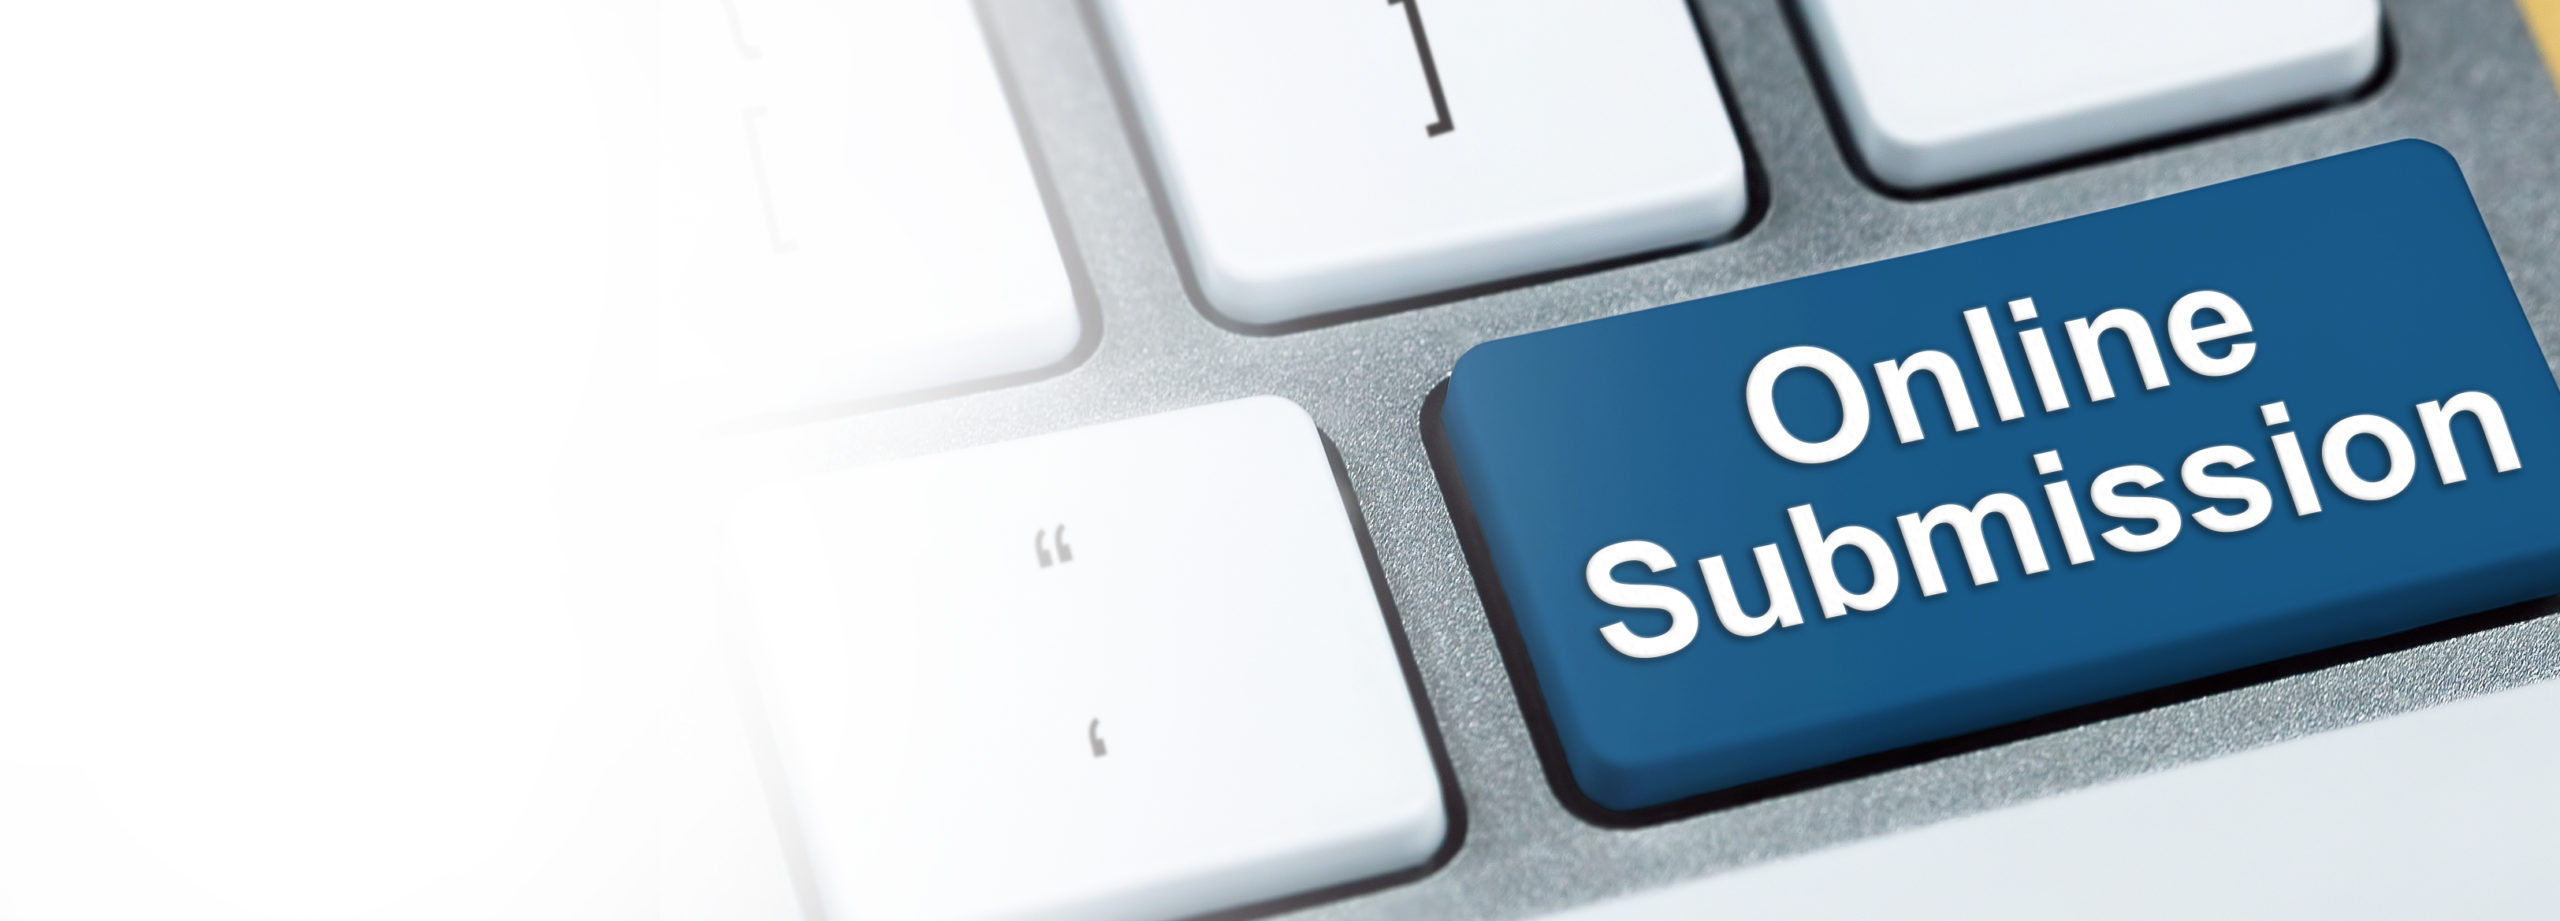 EFSA online submission